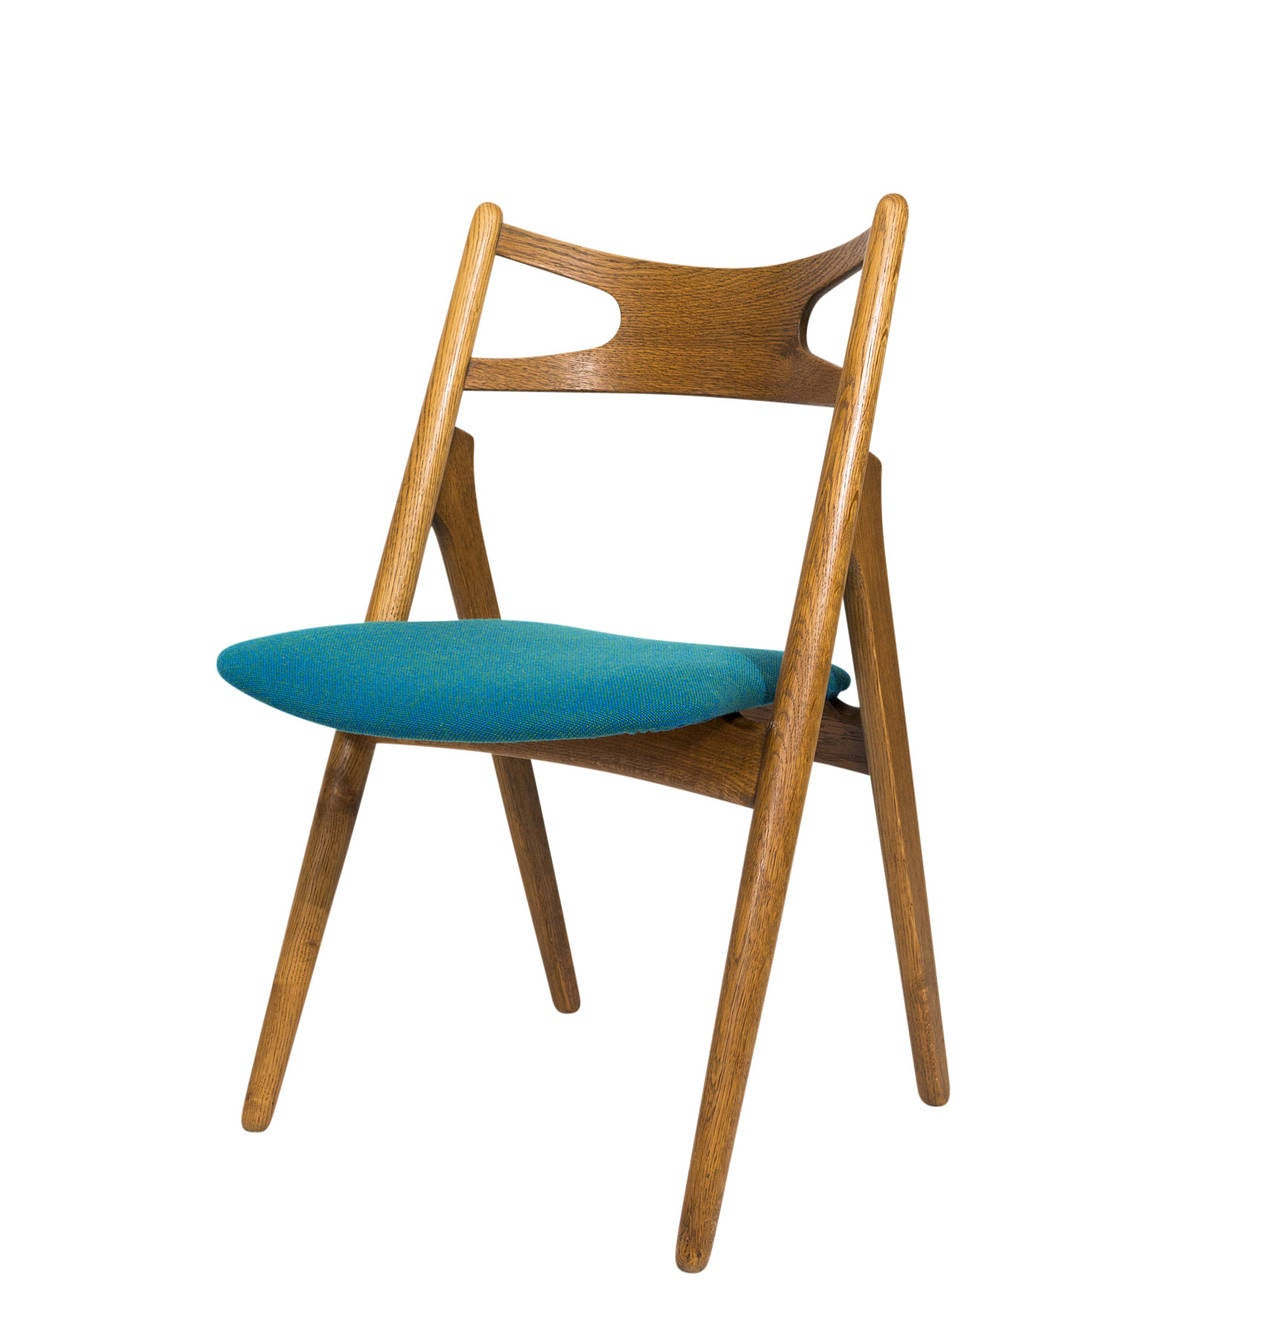 Set of 12 Hans Wegner CH 29 dining chairs designed in 1951 and produced by Carl Hansen & Søn.   Store formerly known as ARTFUL DODGER INC